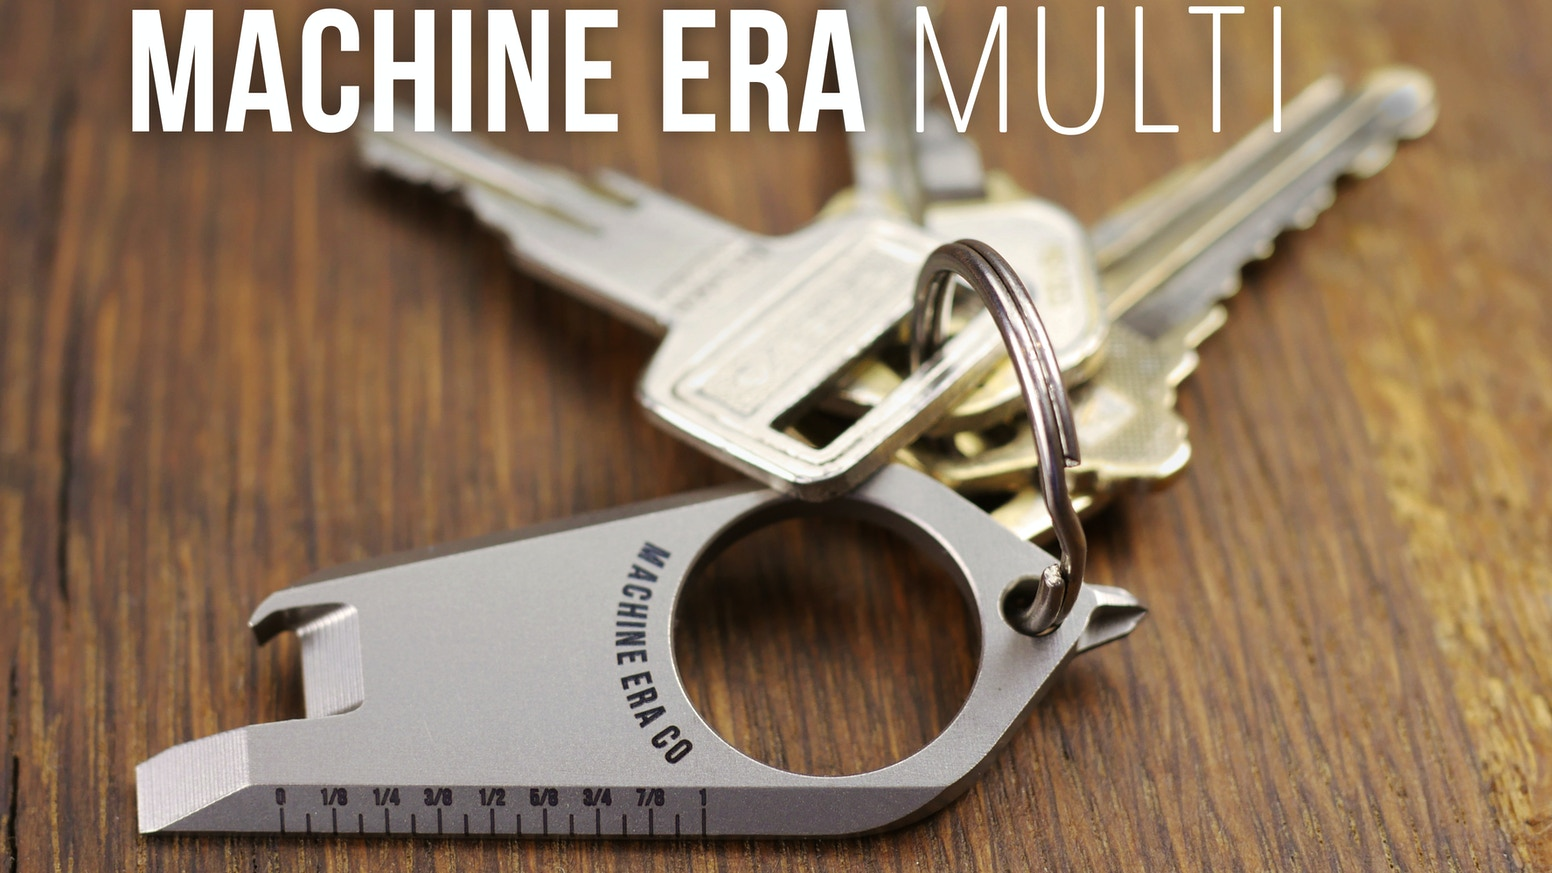 Introducing: Machine Era MULTI. A simple, functional, & sleek titanium multi-tool.  Rethink Your Everyday Carry.